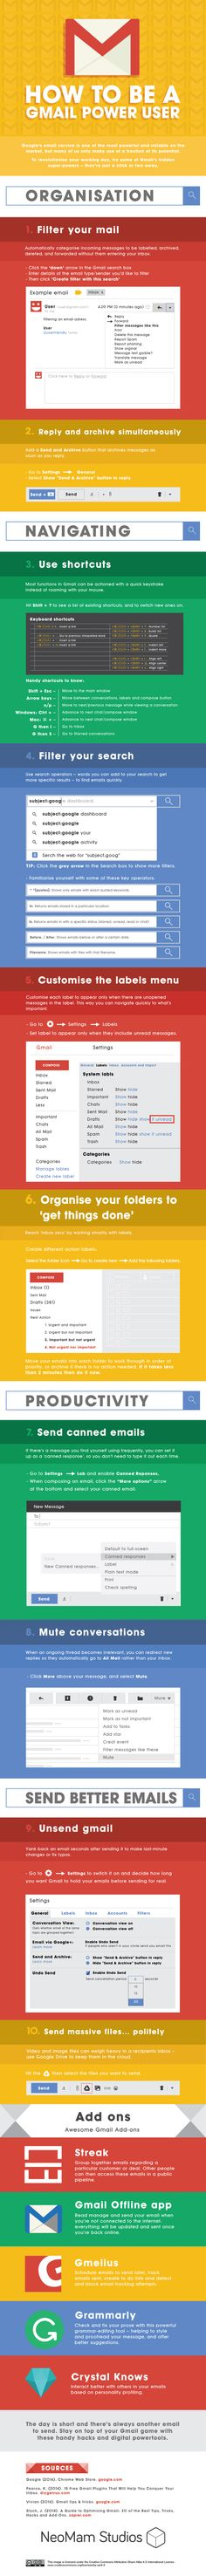 How To Be A Gmail Power User [INFOGRAPHIC] | http://www.digitalinformationworld.com/